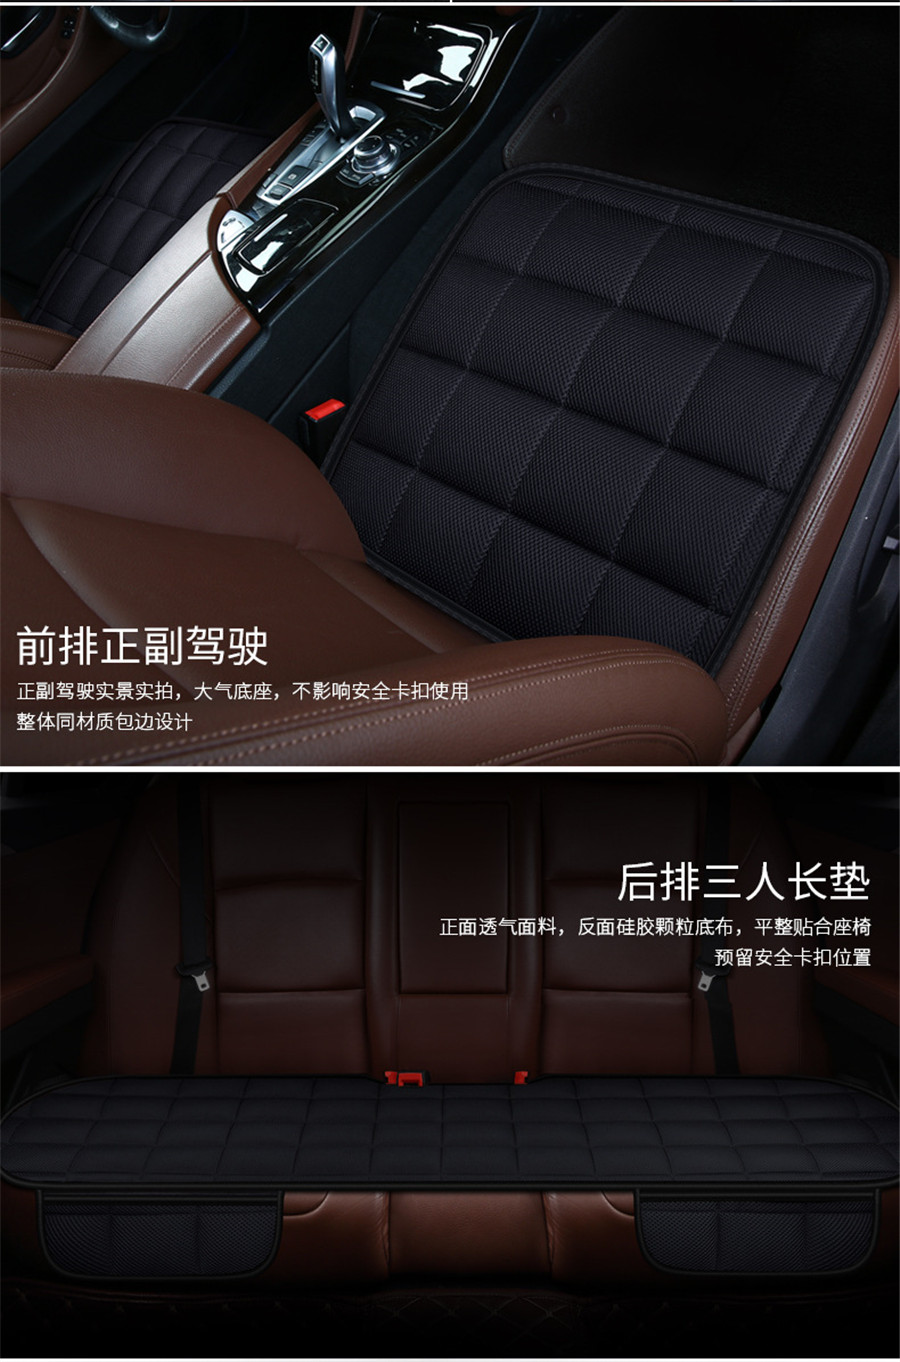 5 Seat 3D Car Seat Cushion Bamboo Charcoal Breathable Front Back Rear Seat Cover Pad For All Car Chair Pad Car Styling - 5